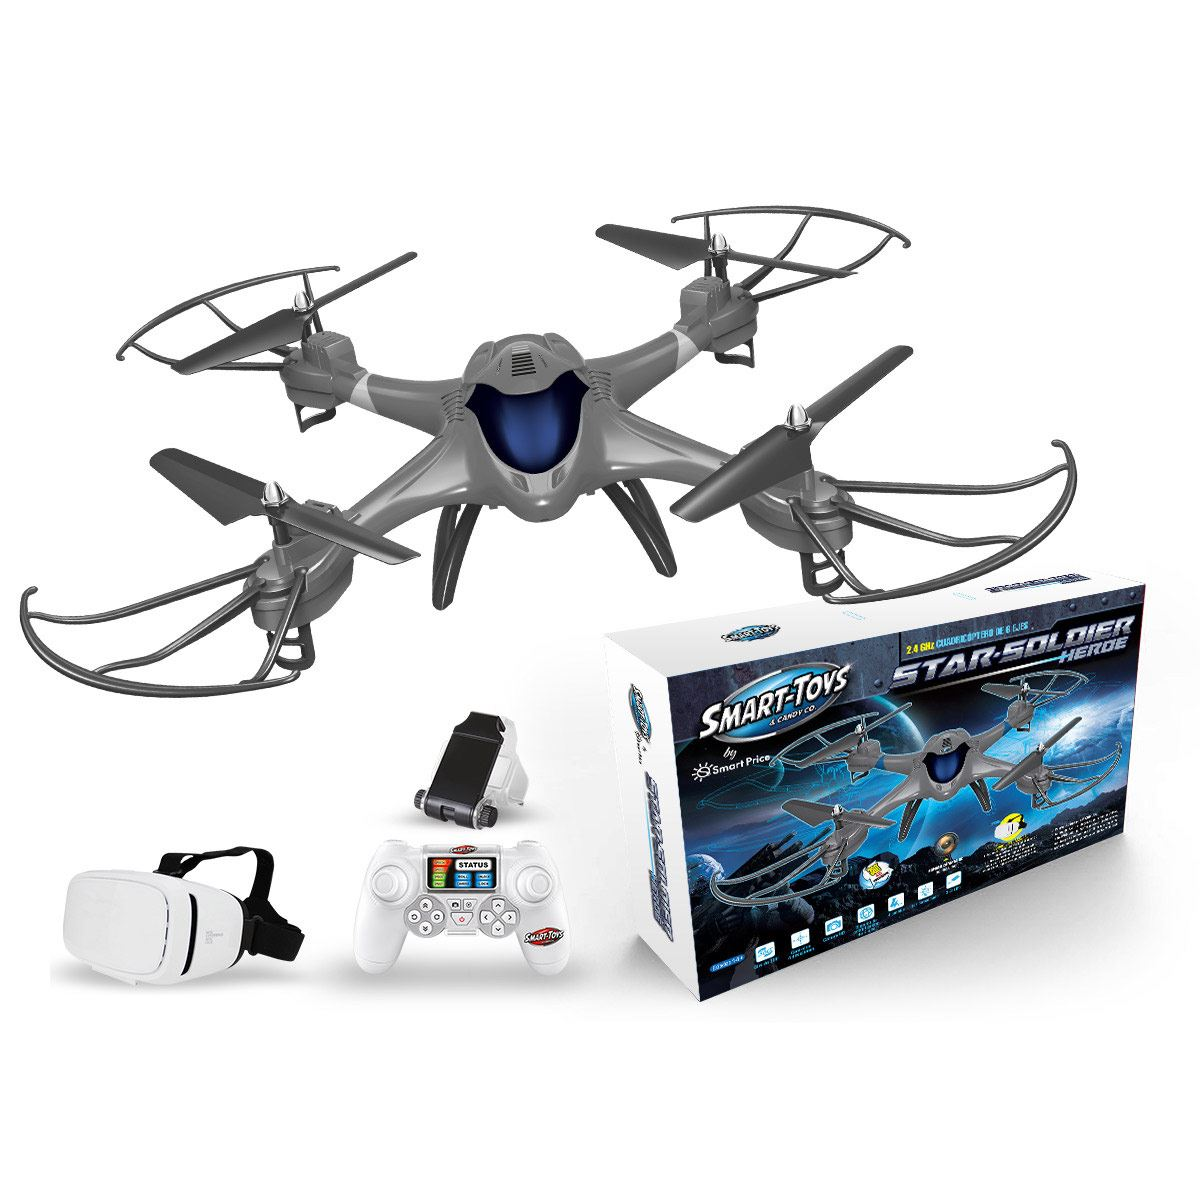 Smart Drone E-12 Starsoldier Smart Price